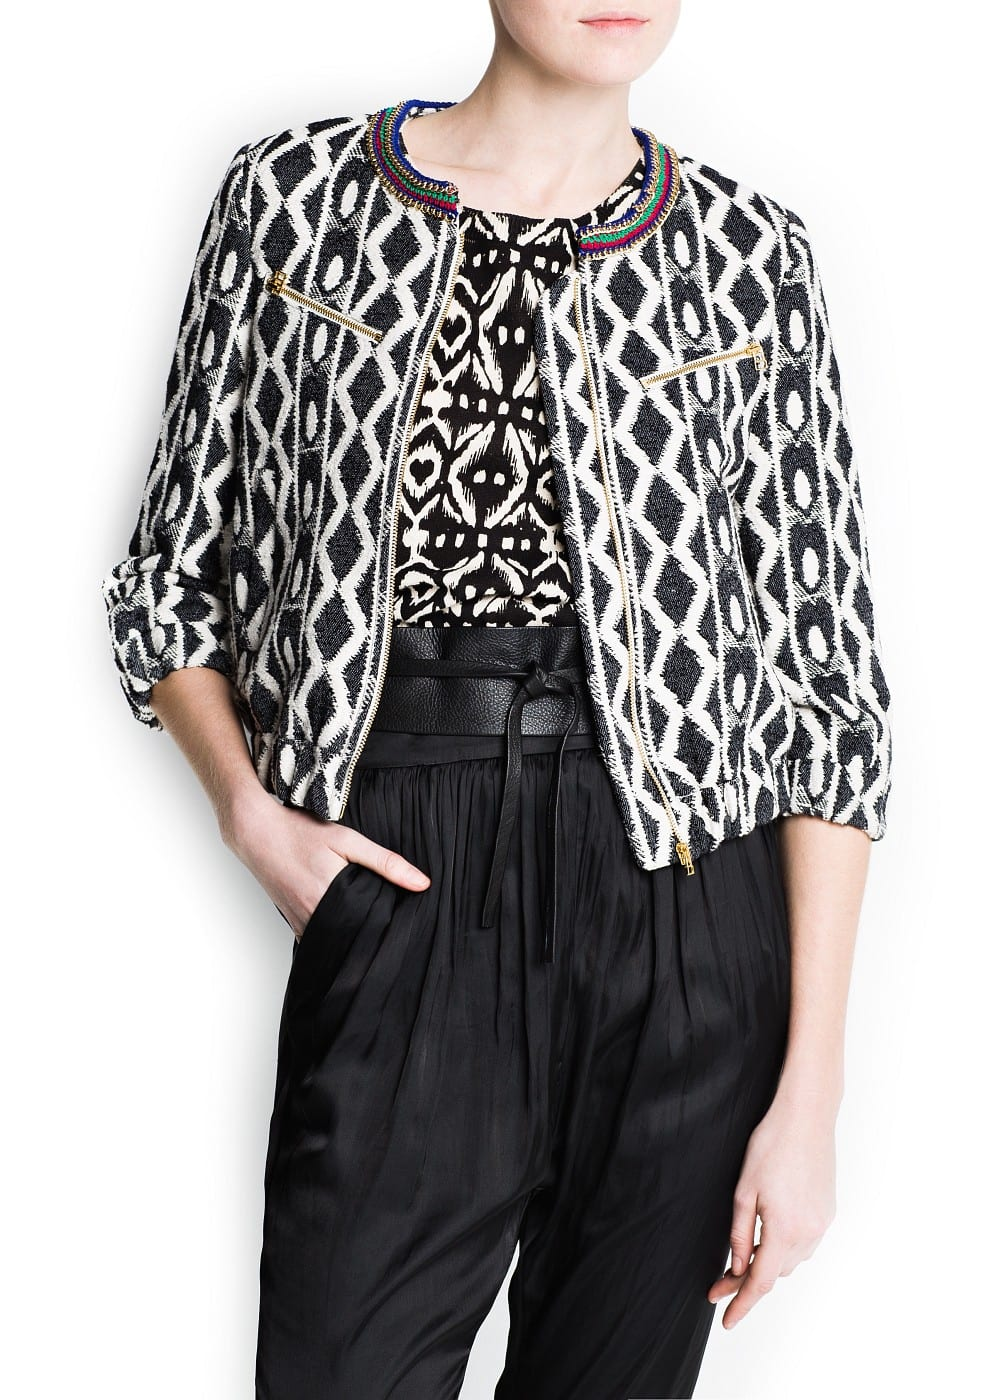 Ethnic fabric chains jacket